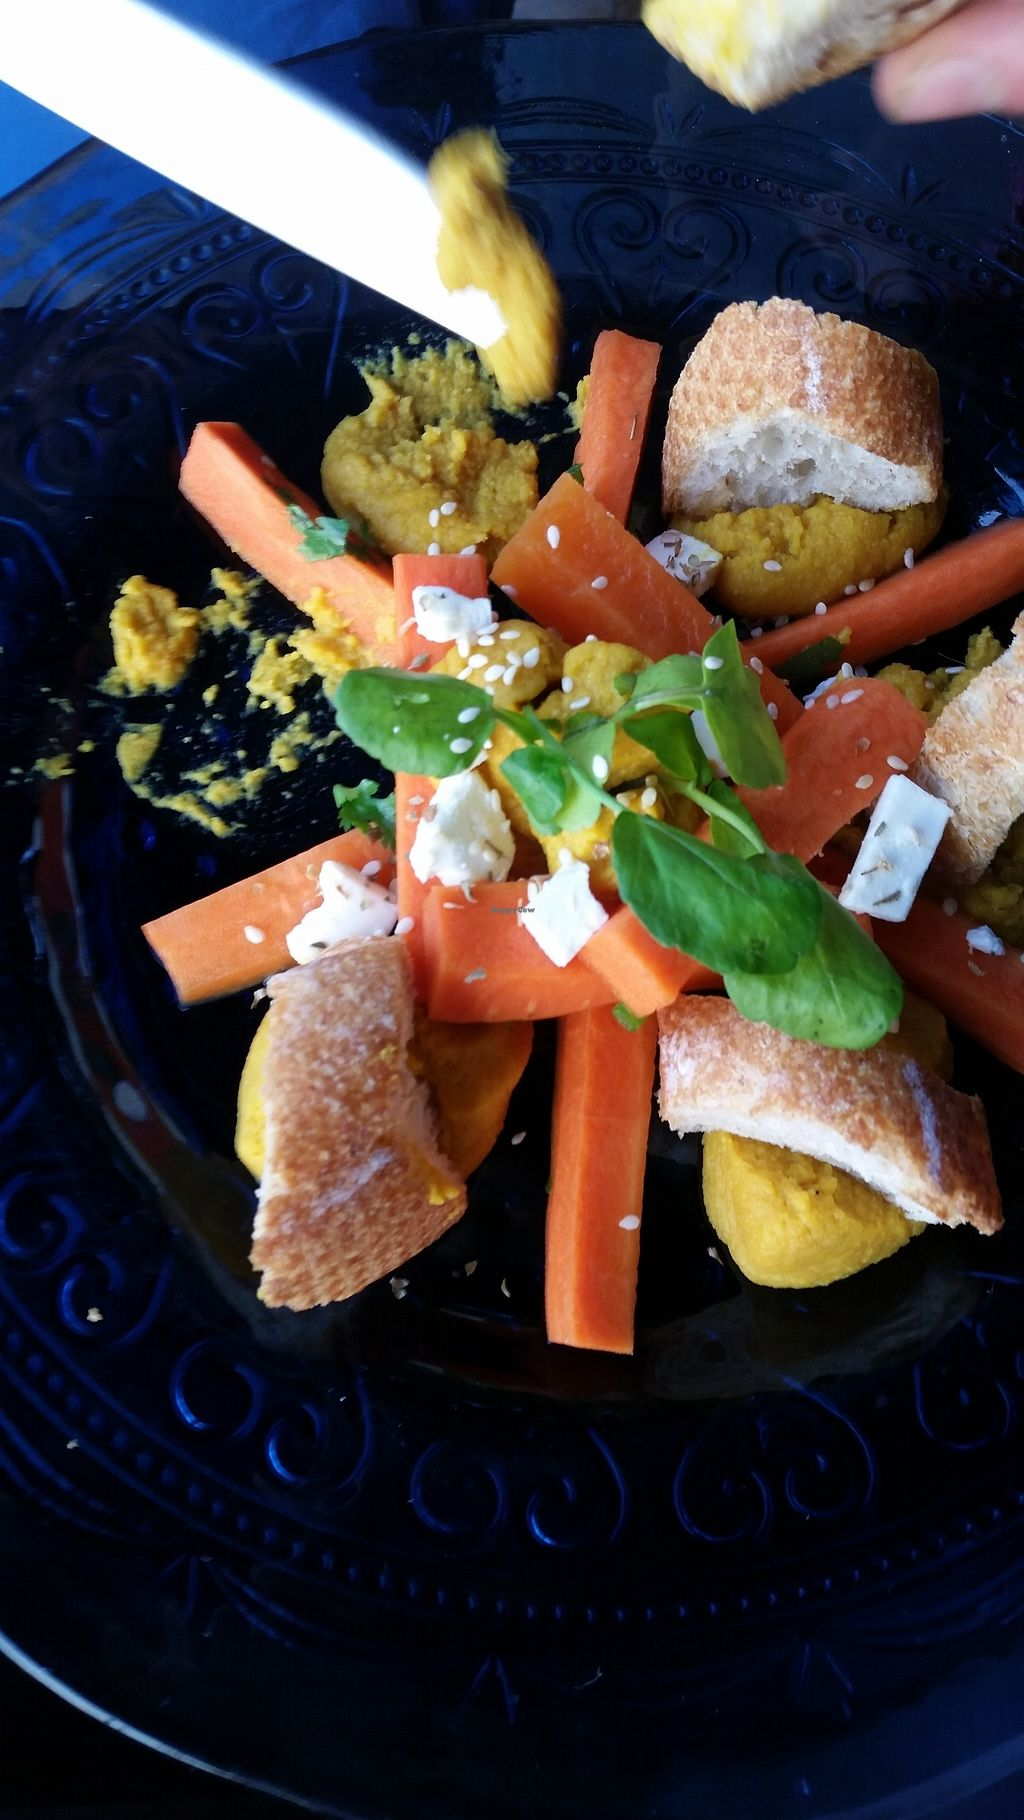 """Photo of Ock Pop Tok Living Craft Centre  by <a href=""""/members/profile/Nimeda"""">Nimeda</a> <br/>Hummus platter with pickled carrots, feta and baguette. Could be veganized by leaving out the baguette (contains eggs according to staff) and feta <br/> February 14, 2018  - <a href='/contact/abuse/image/111949/359053'>Report</a>"""